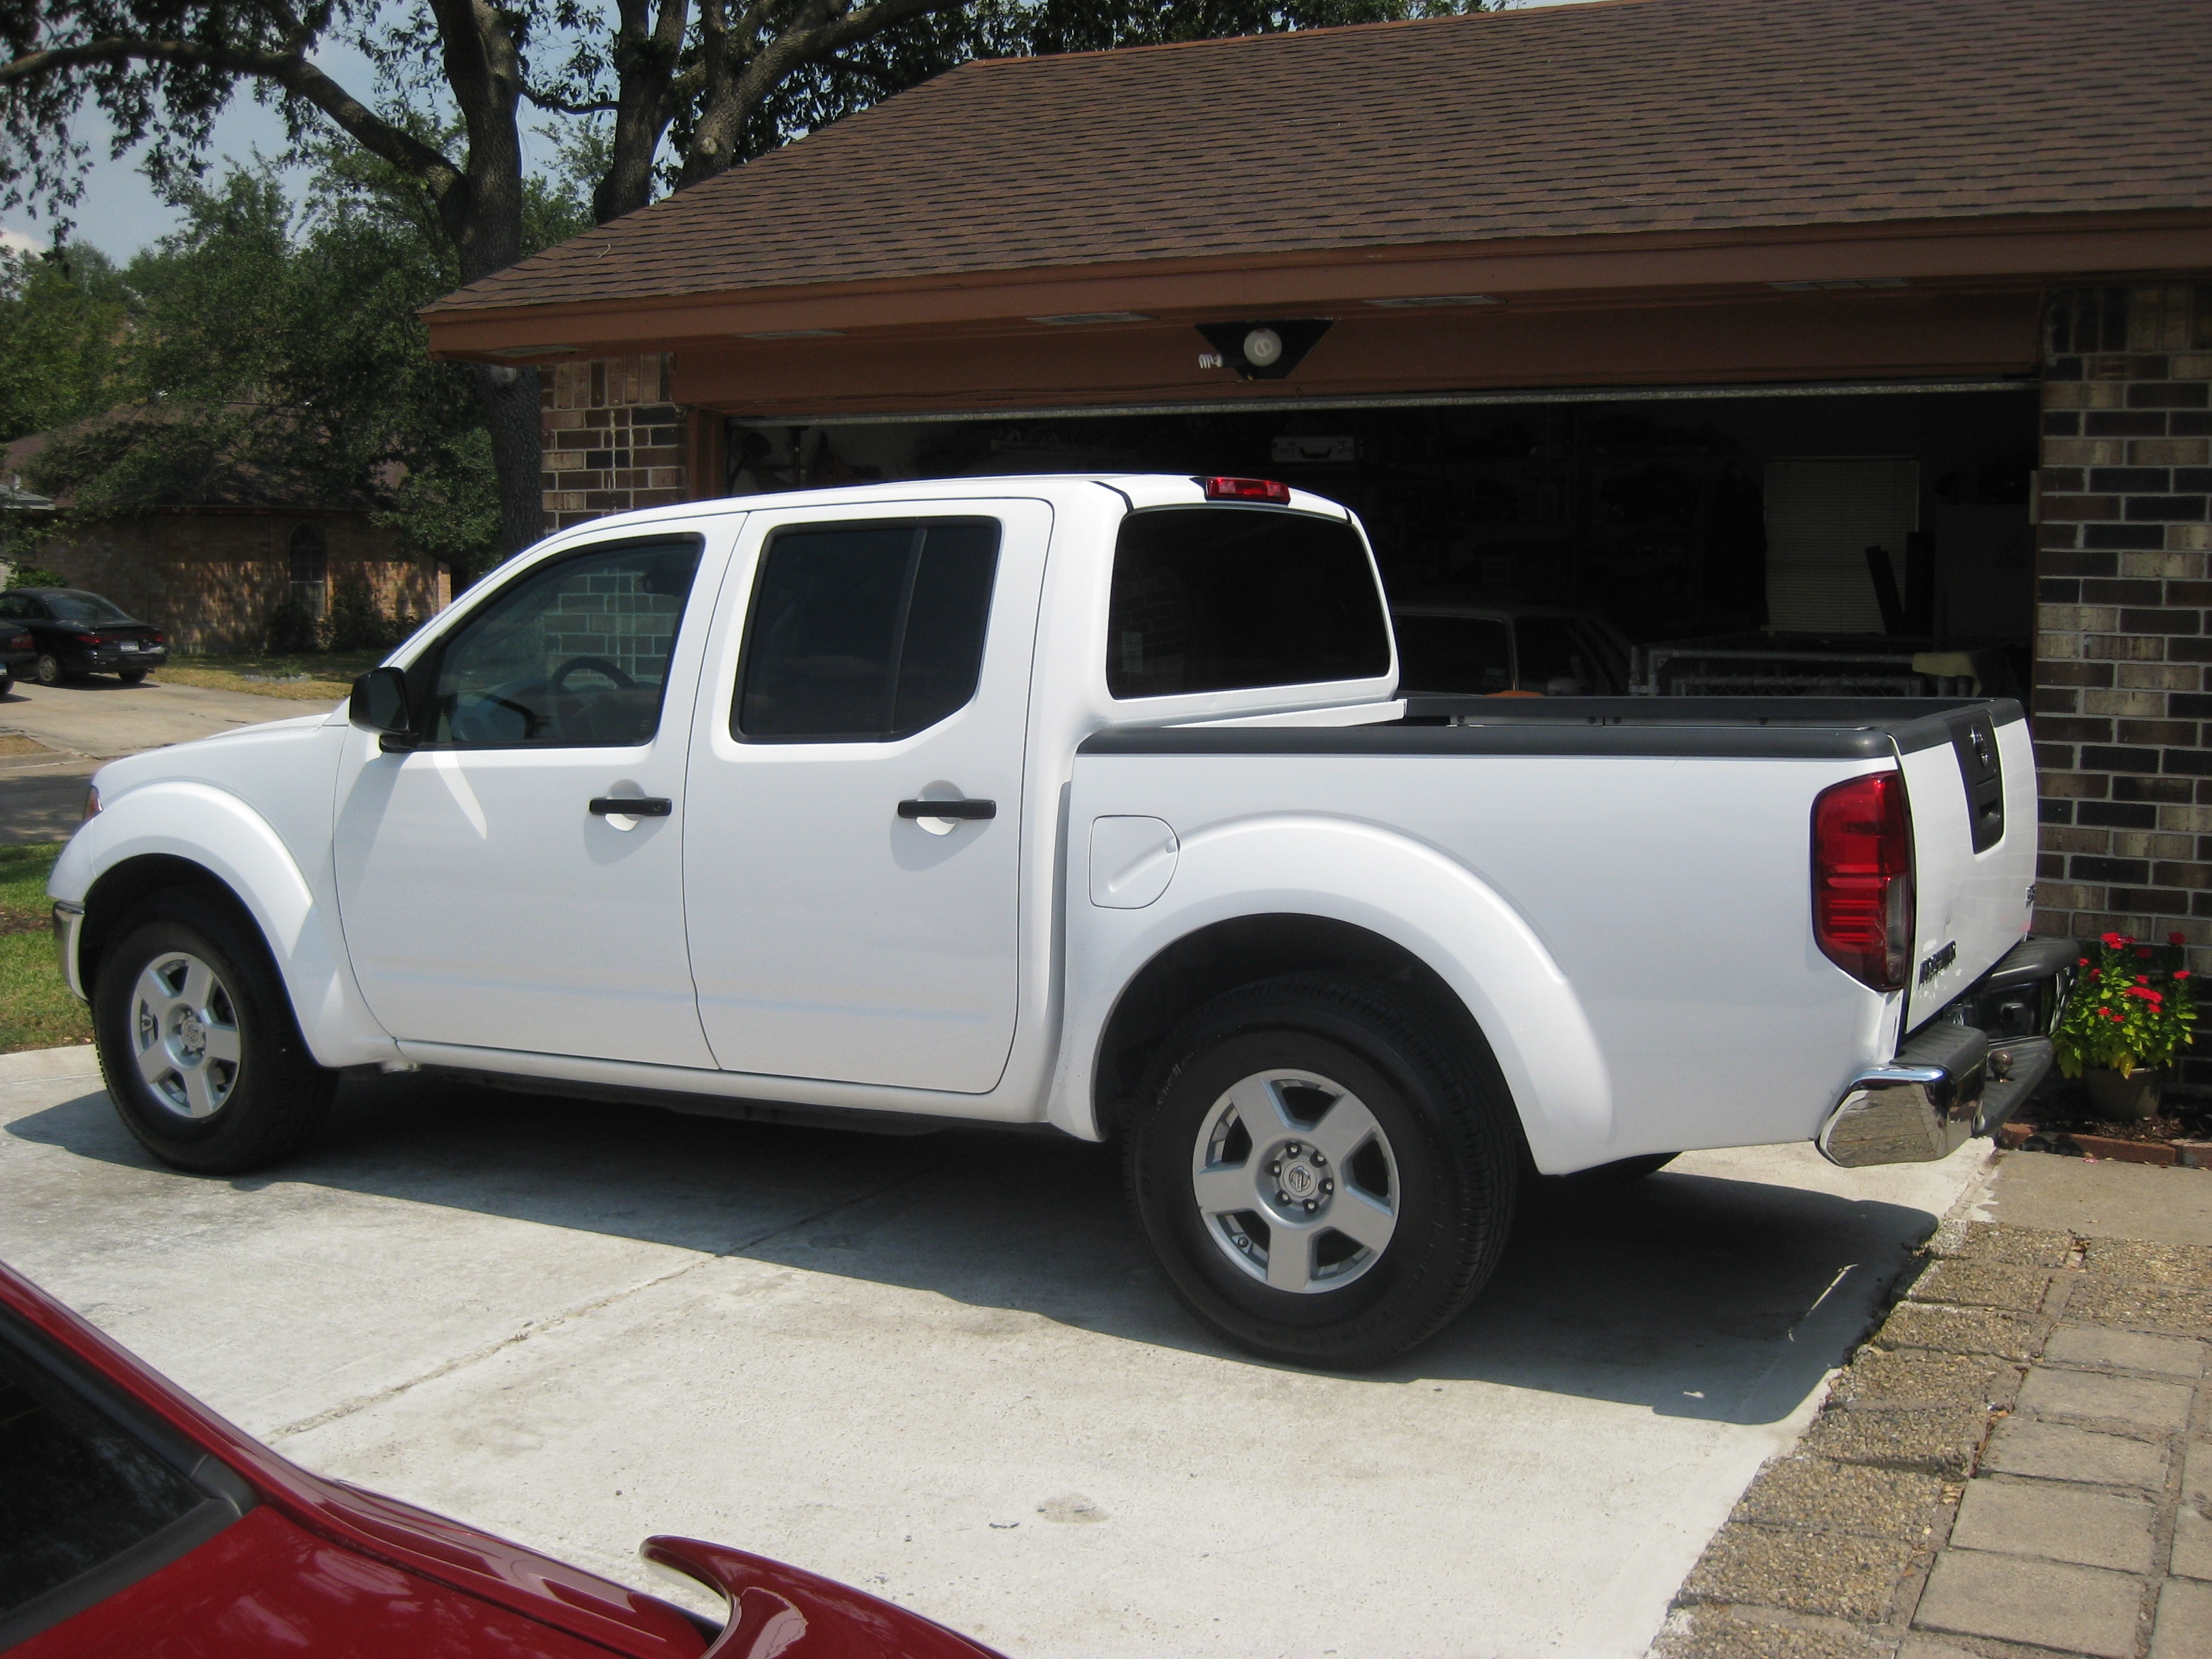 Used Cars For Sale Houston Texas Robbins Nissan: Used Nissan Frontier For Sale Houston Tx Cargurus